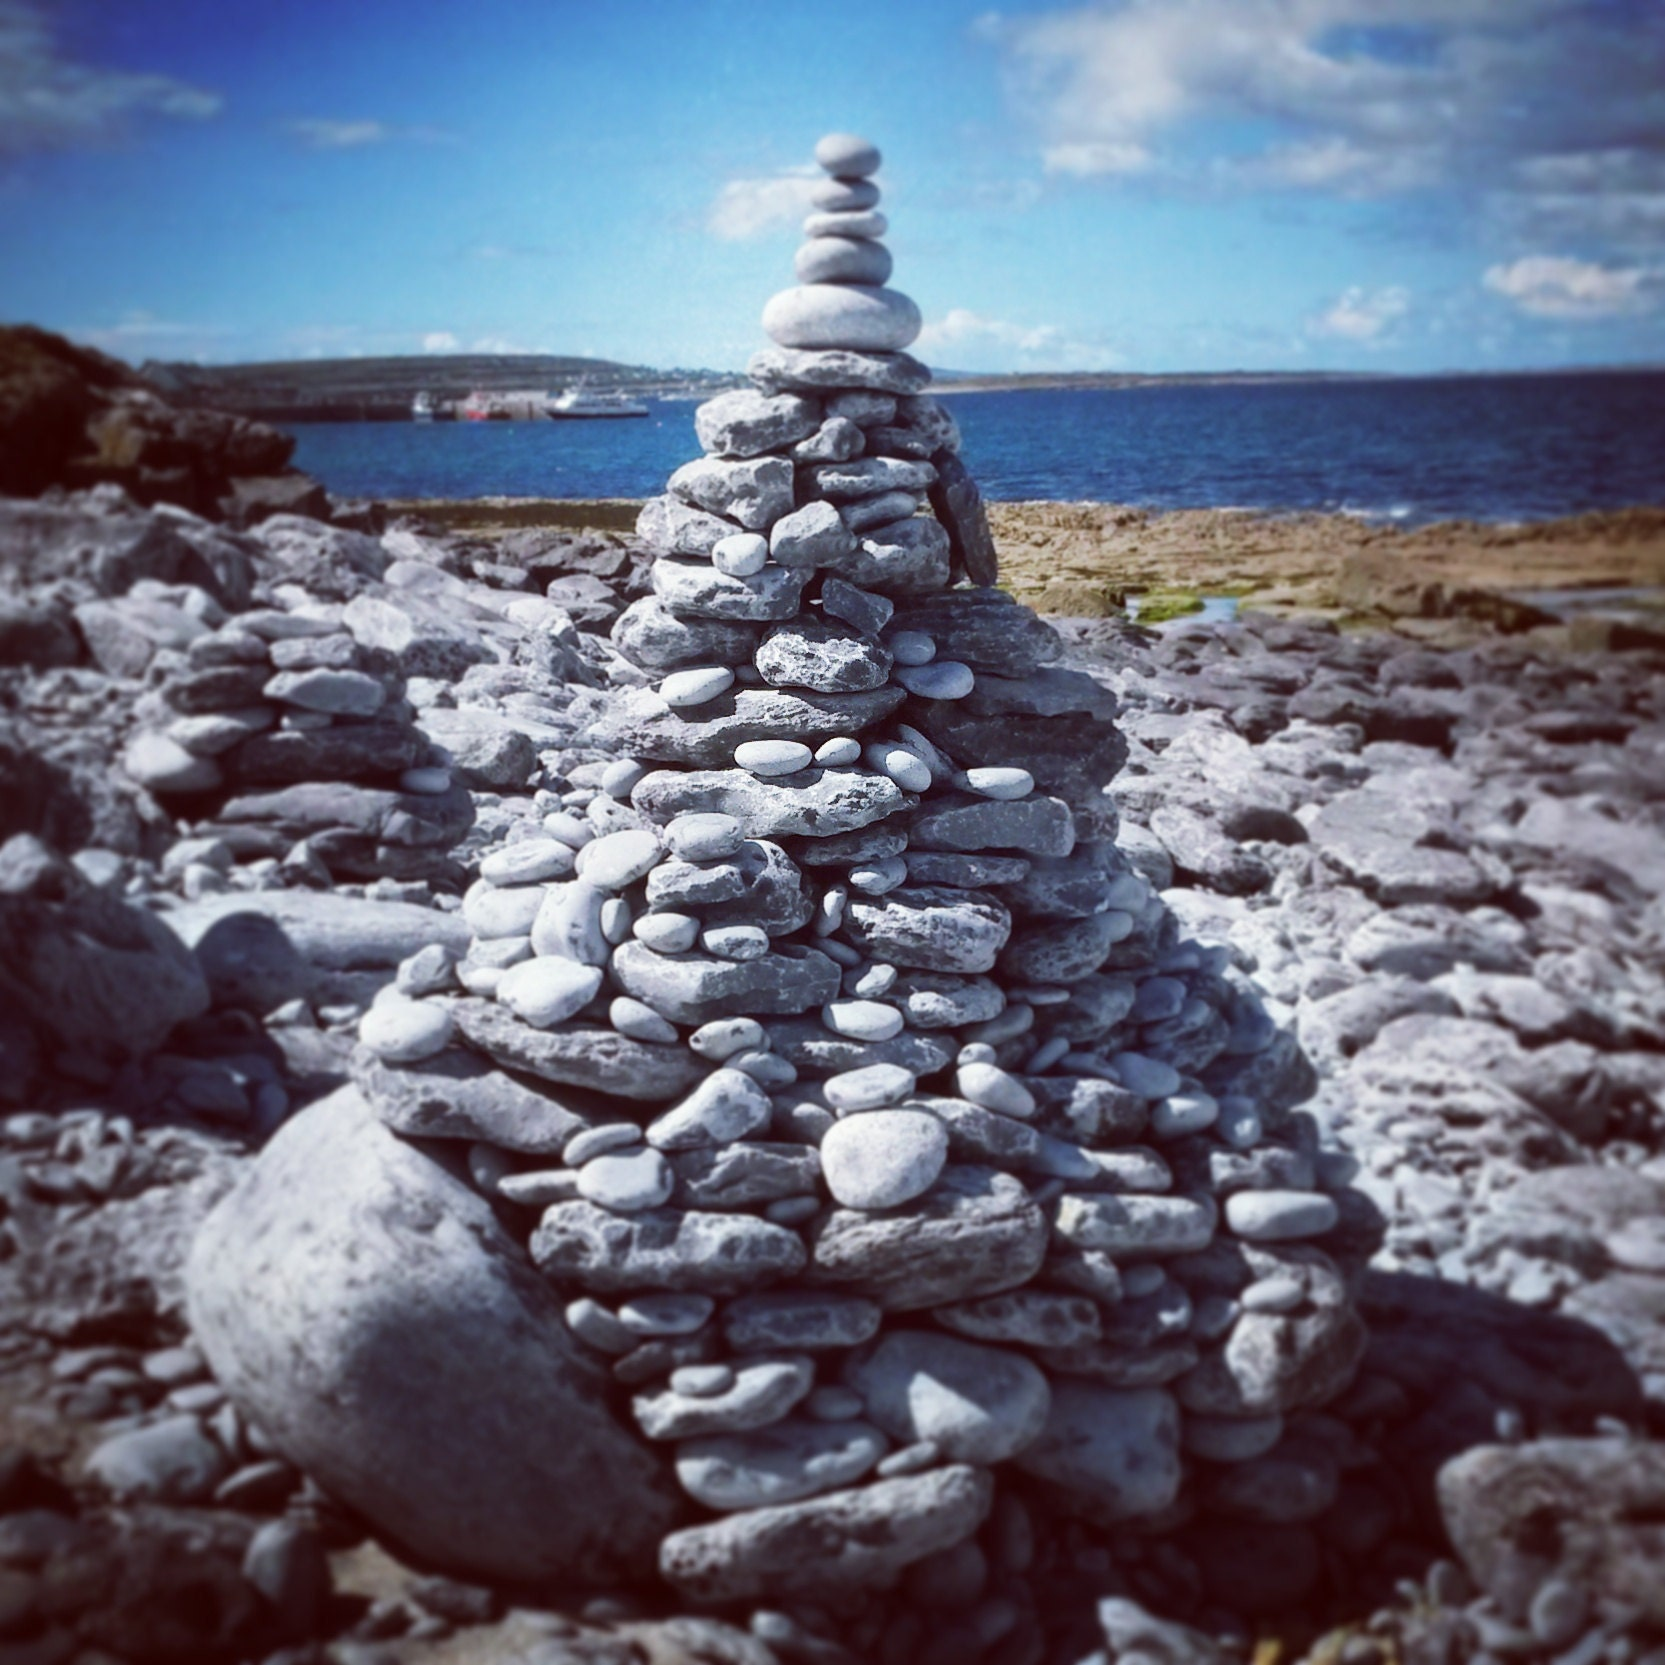 Stone cairn by the shore